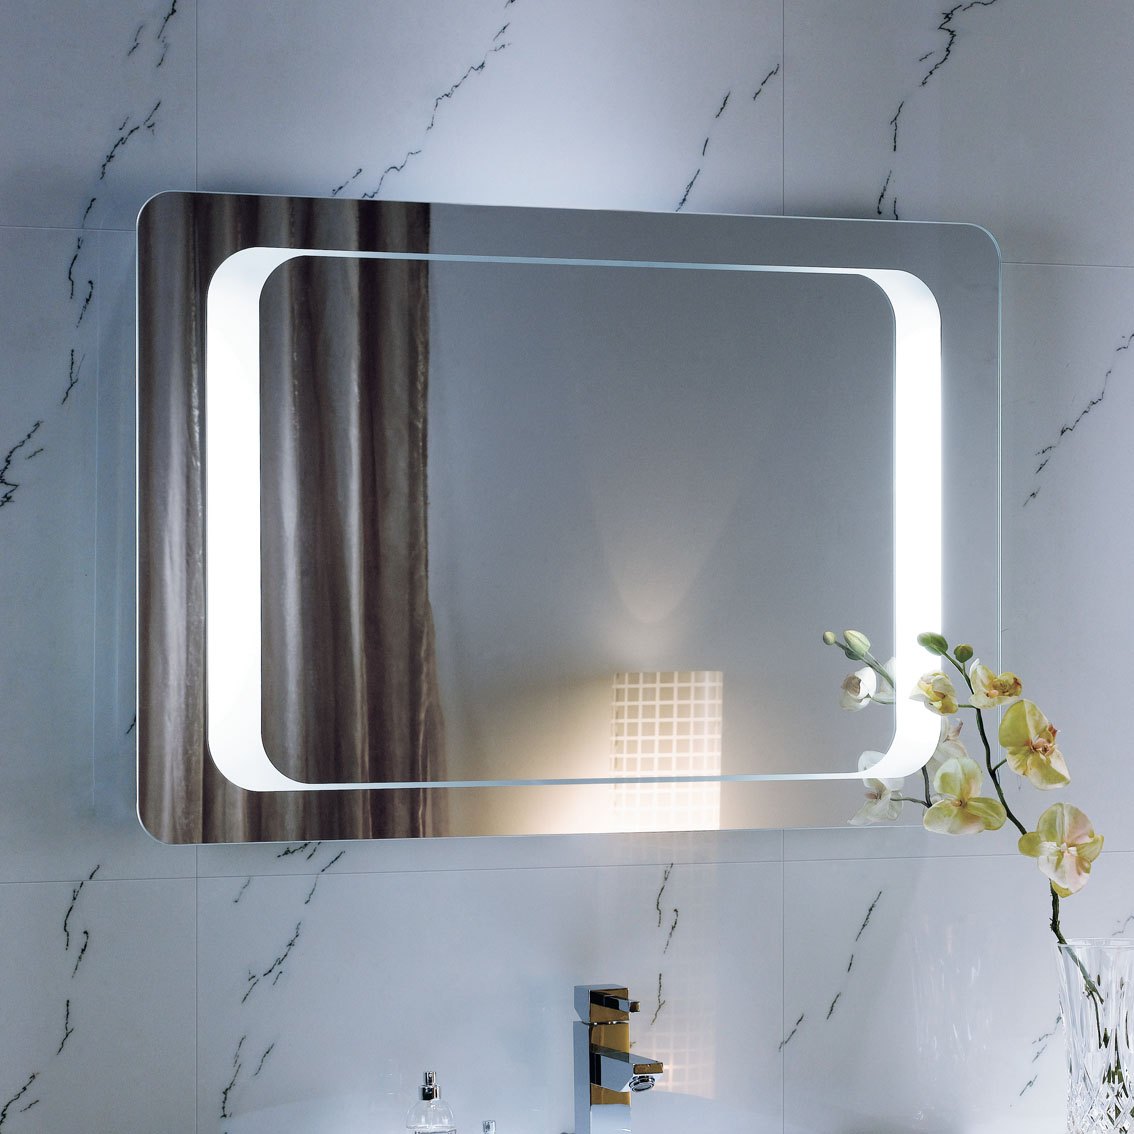 Illuminated Mirrors Bathroom: 600 X 900 Backlit Bathroom Mirror Wall Mounted Demister